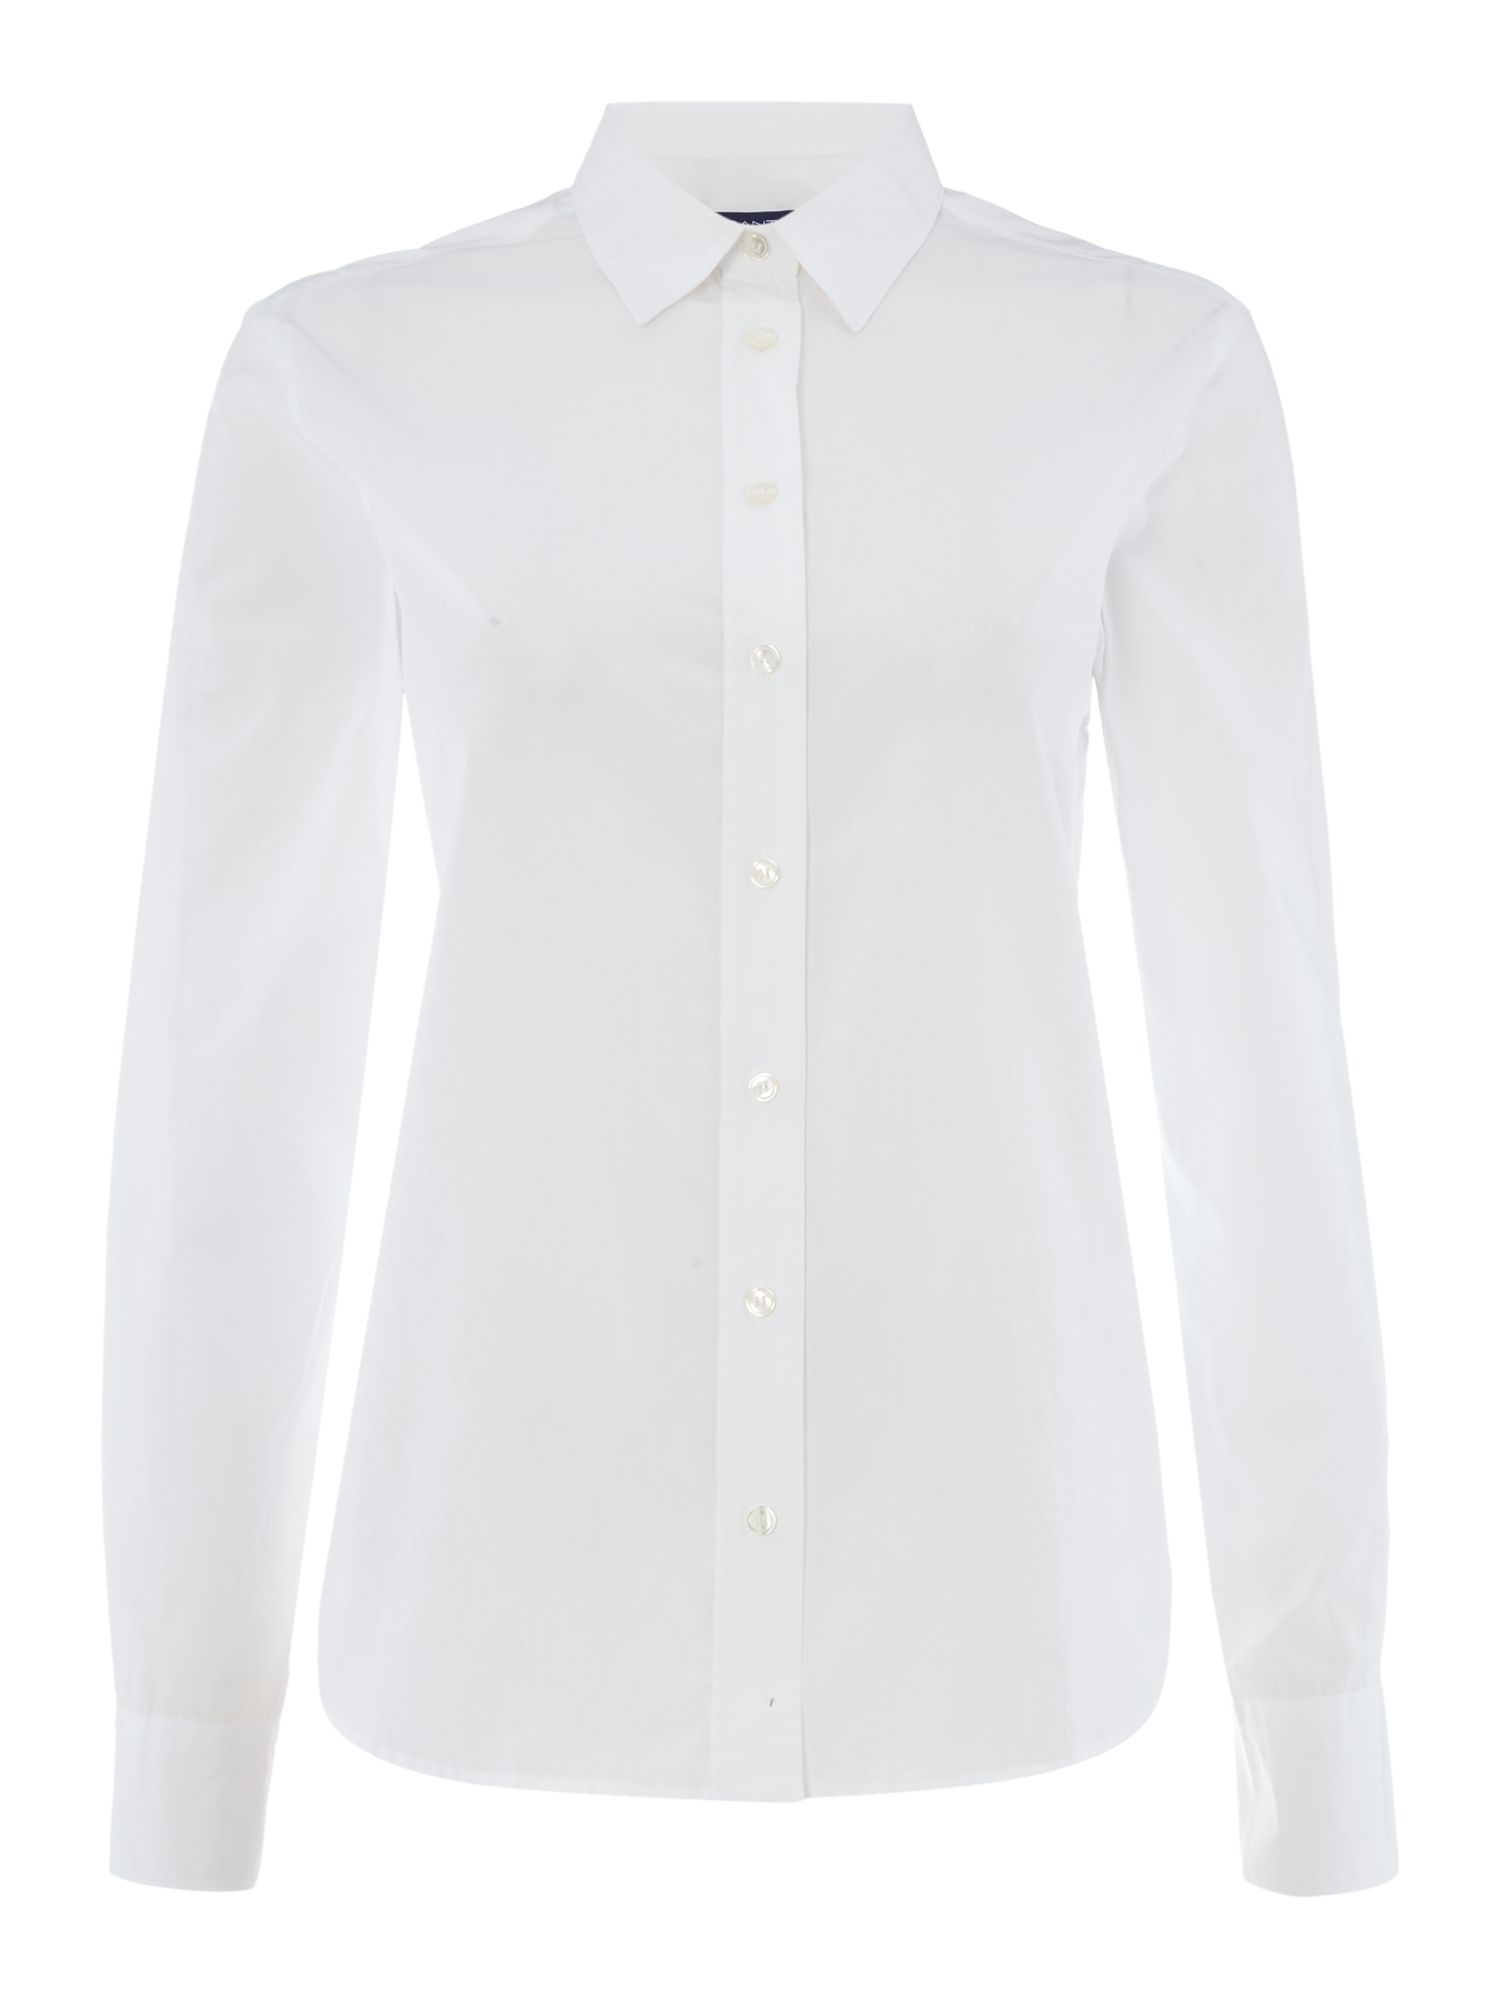 Gant Perfect Long Sleeved Shirt With Classic Collar, White